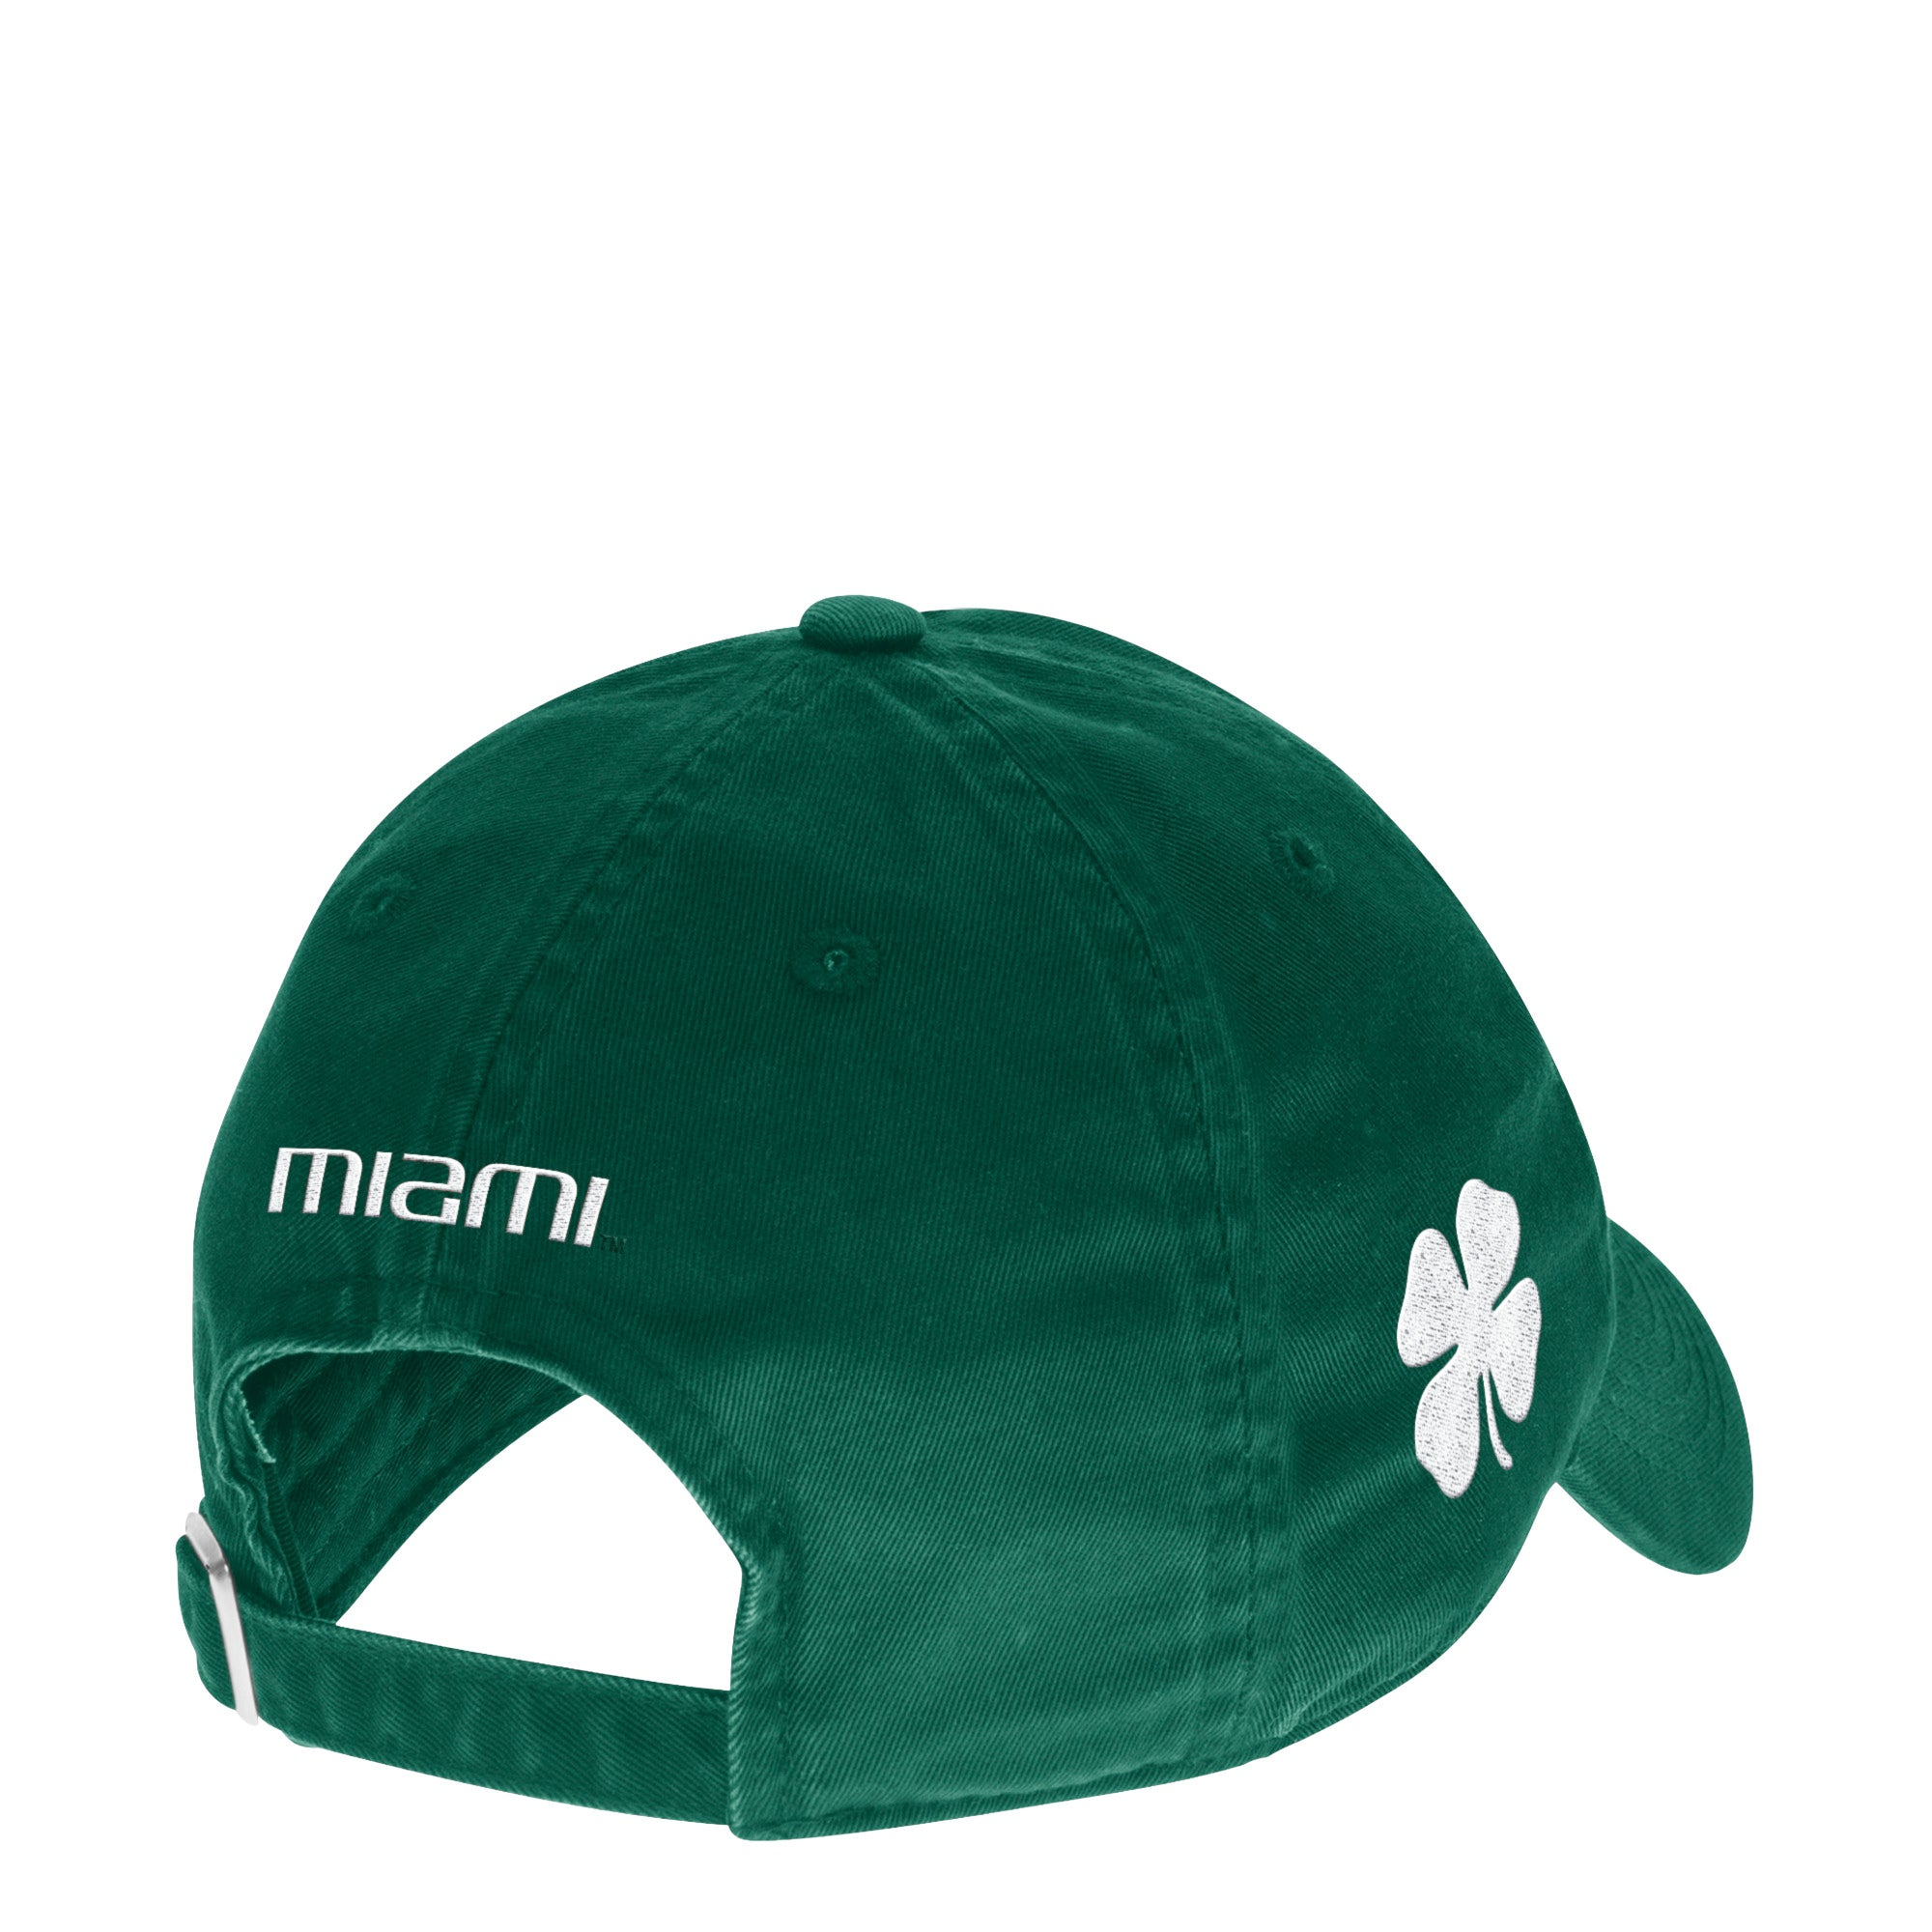 new arrival 0f2bc 3320b Miami Hurricanes adidas Slouch Old English Baseball Adjustable Hat - Green  with Four Leaf Clover